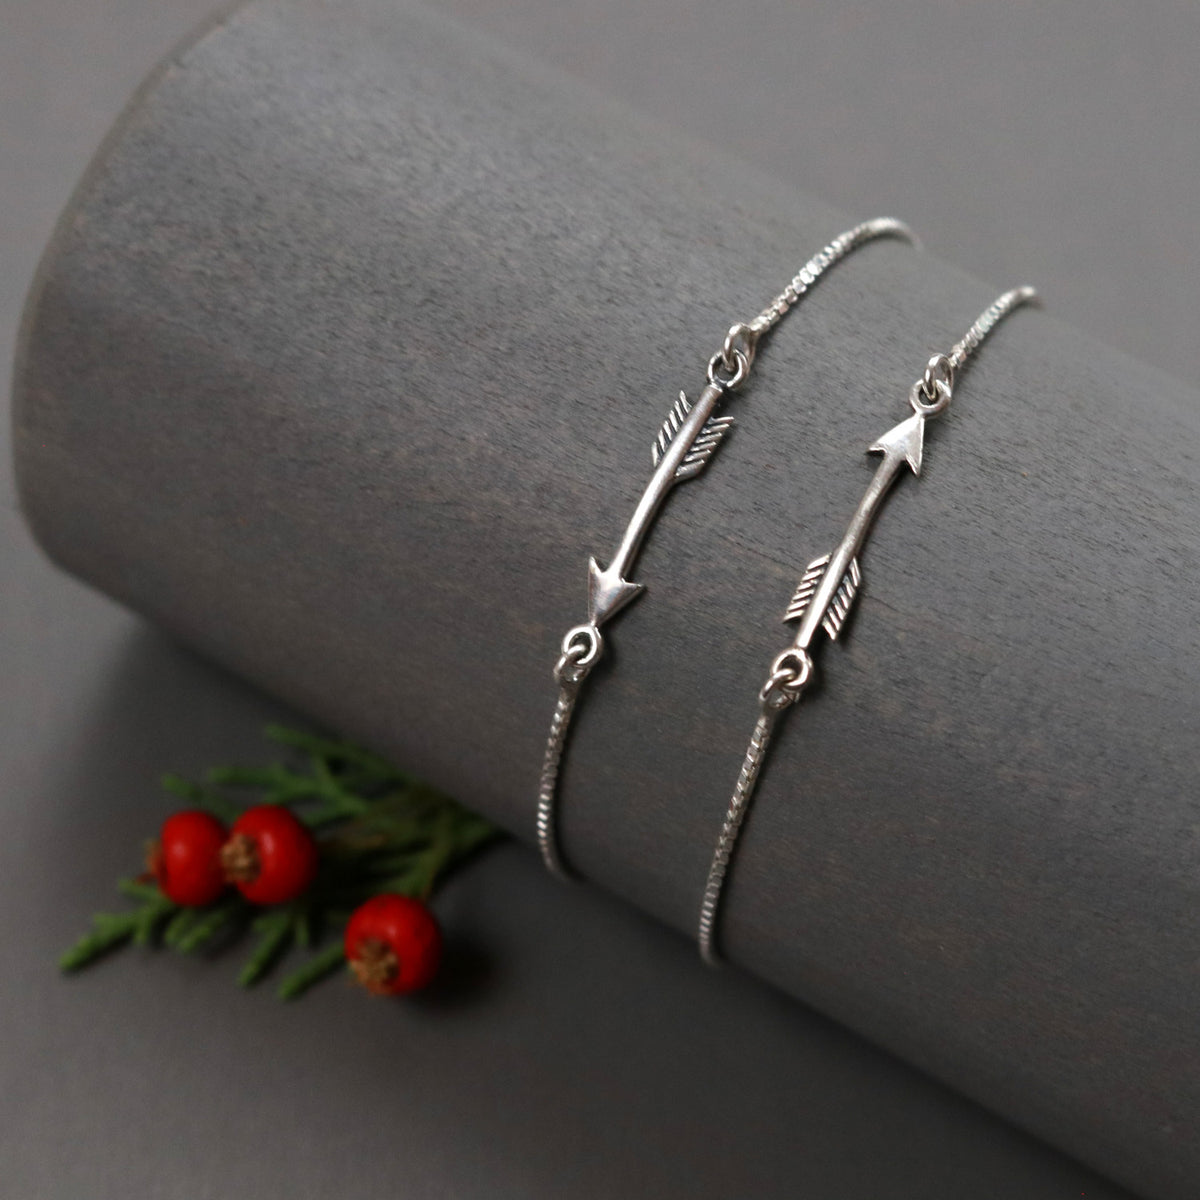 Adjustable Silver Arrow Bracelet-Womens-LittleGreenRoomJewelry-LittleGreenRoomJewelry